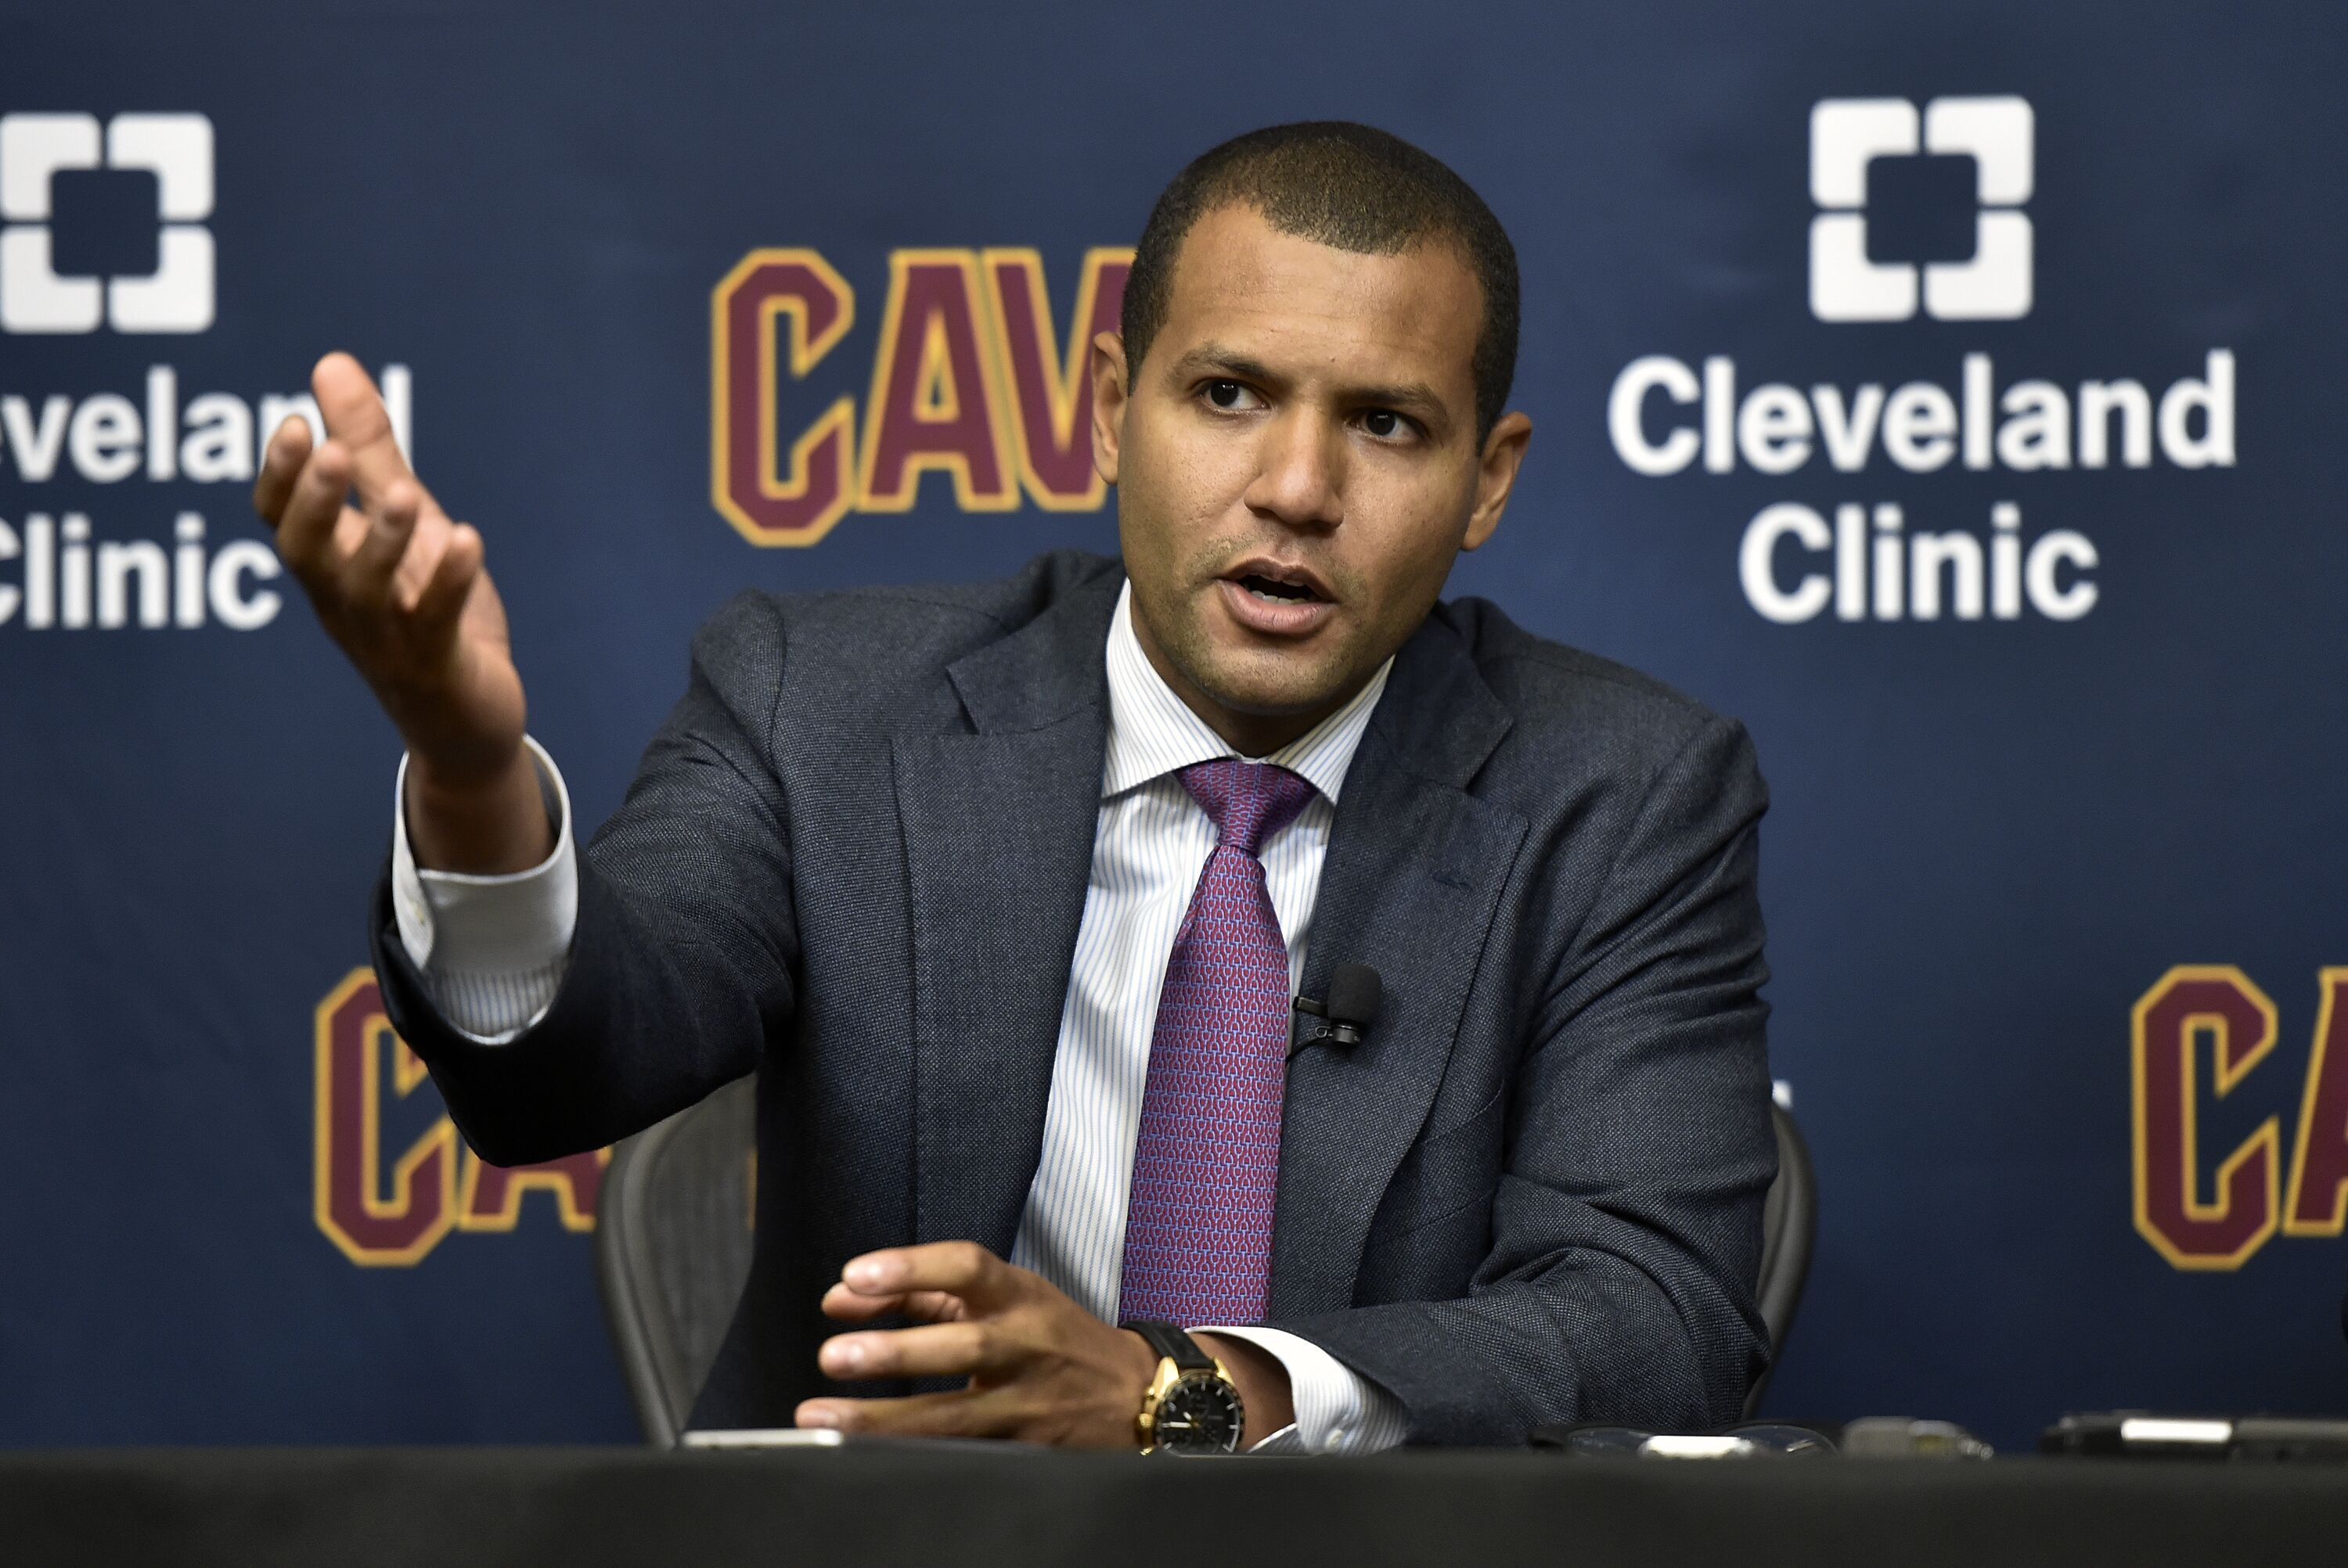 823463440-cleveland-cavaliers-introduce-general-manager-koby-altman.jpg